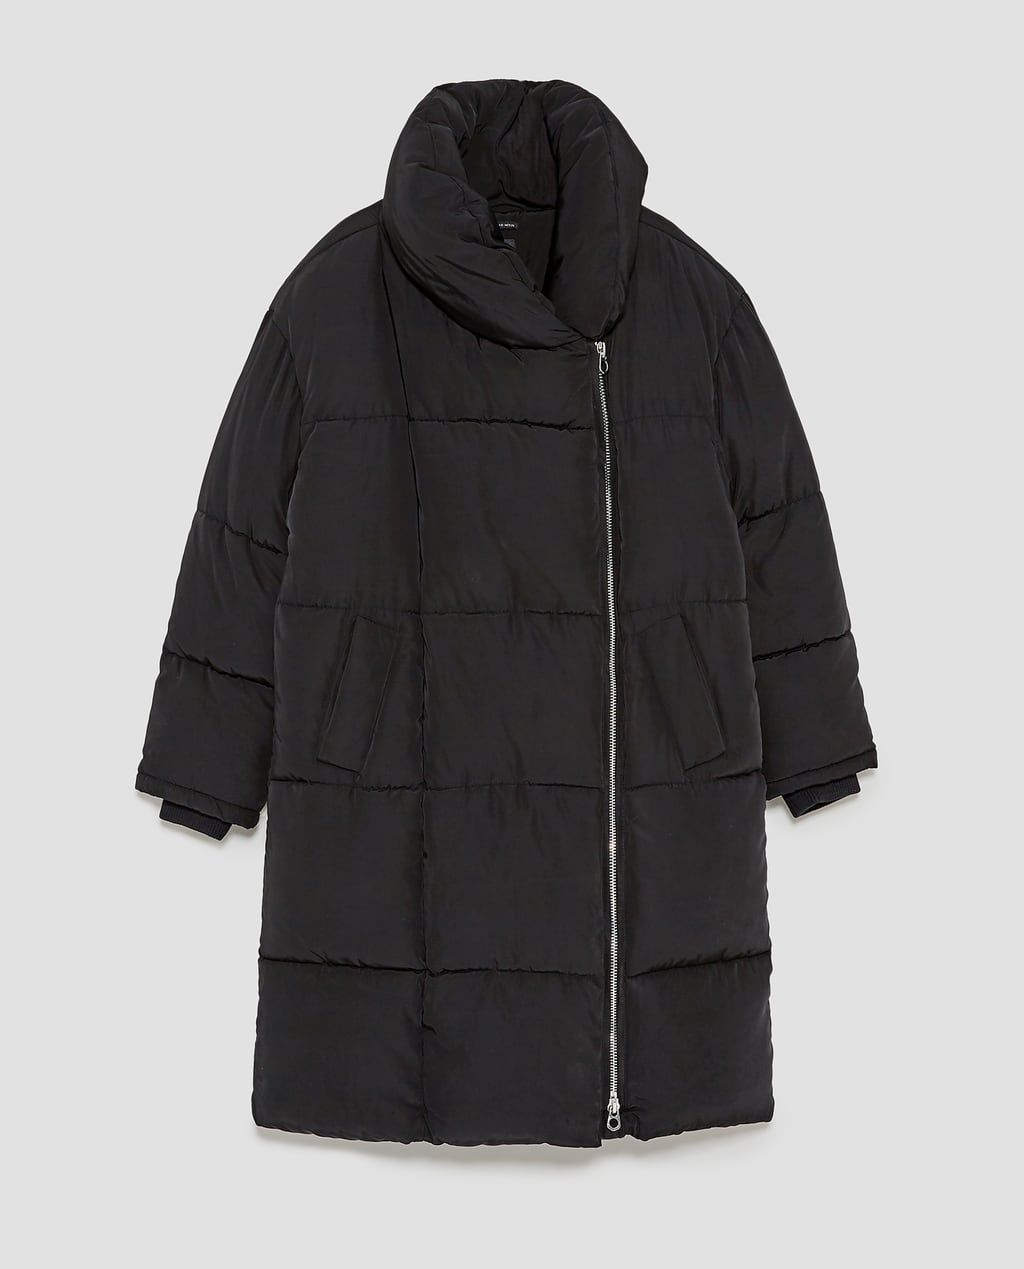 5dce6804b LONG PUFFER COAT WITH CROSSOVER ZIP-Puffers-OUTERWEAR-WOMAN | ZARA ...